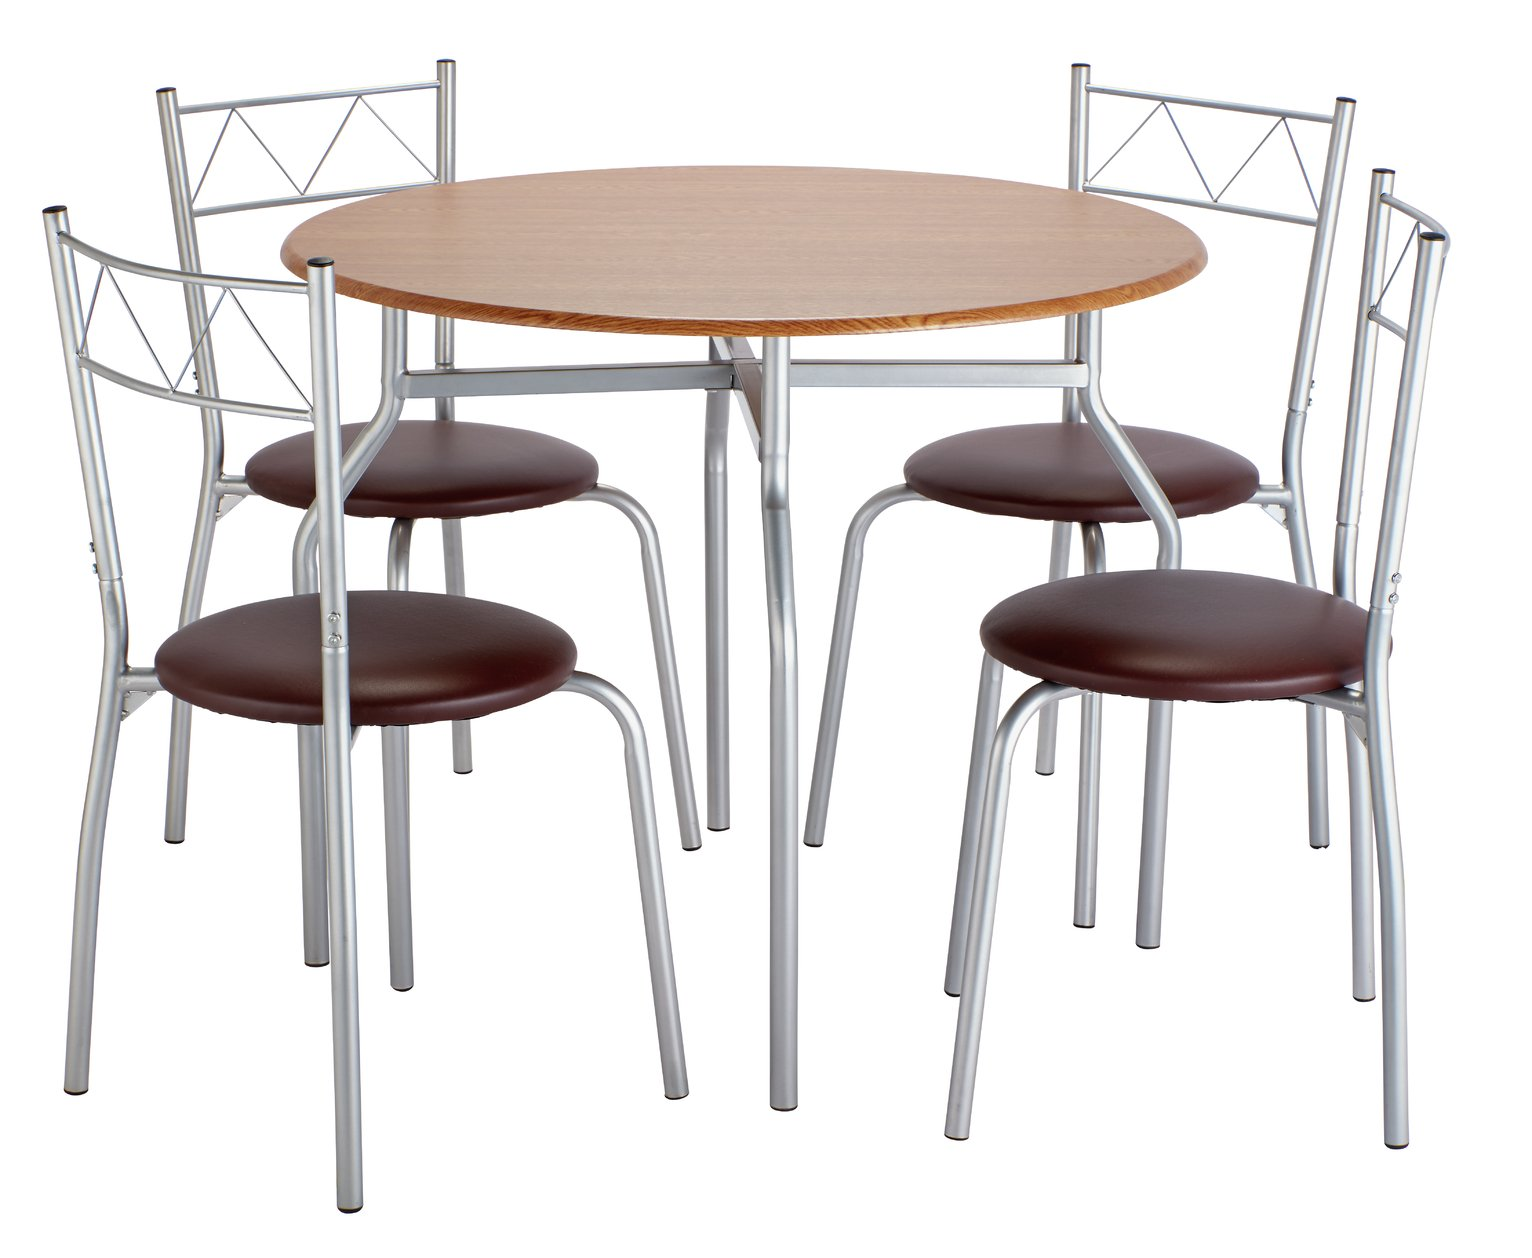 Argos Home Oslo Round Dining Table and 4 Chairs  sc 1 st  Argos & Dining Sets | Kitchen Tables u0026 Chairs | Argos